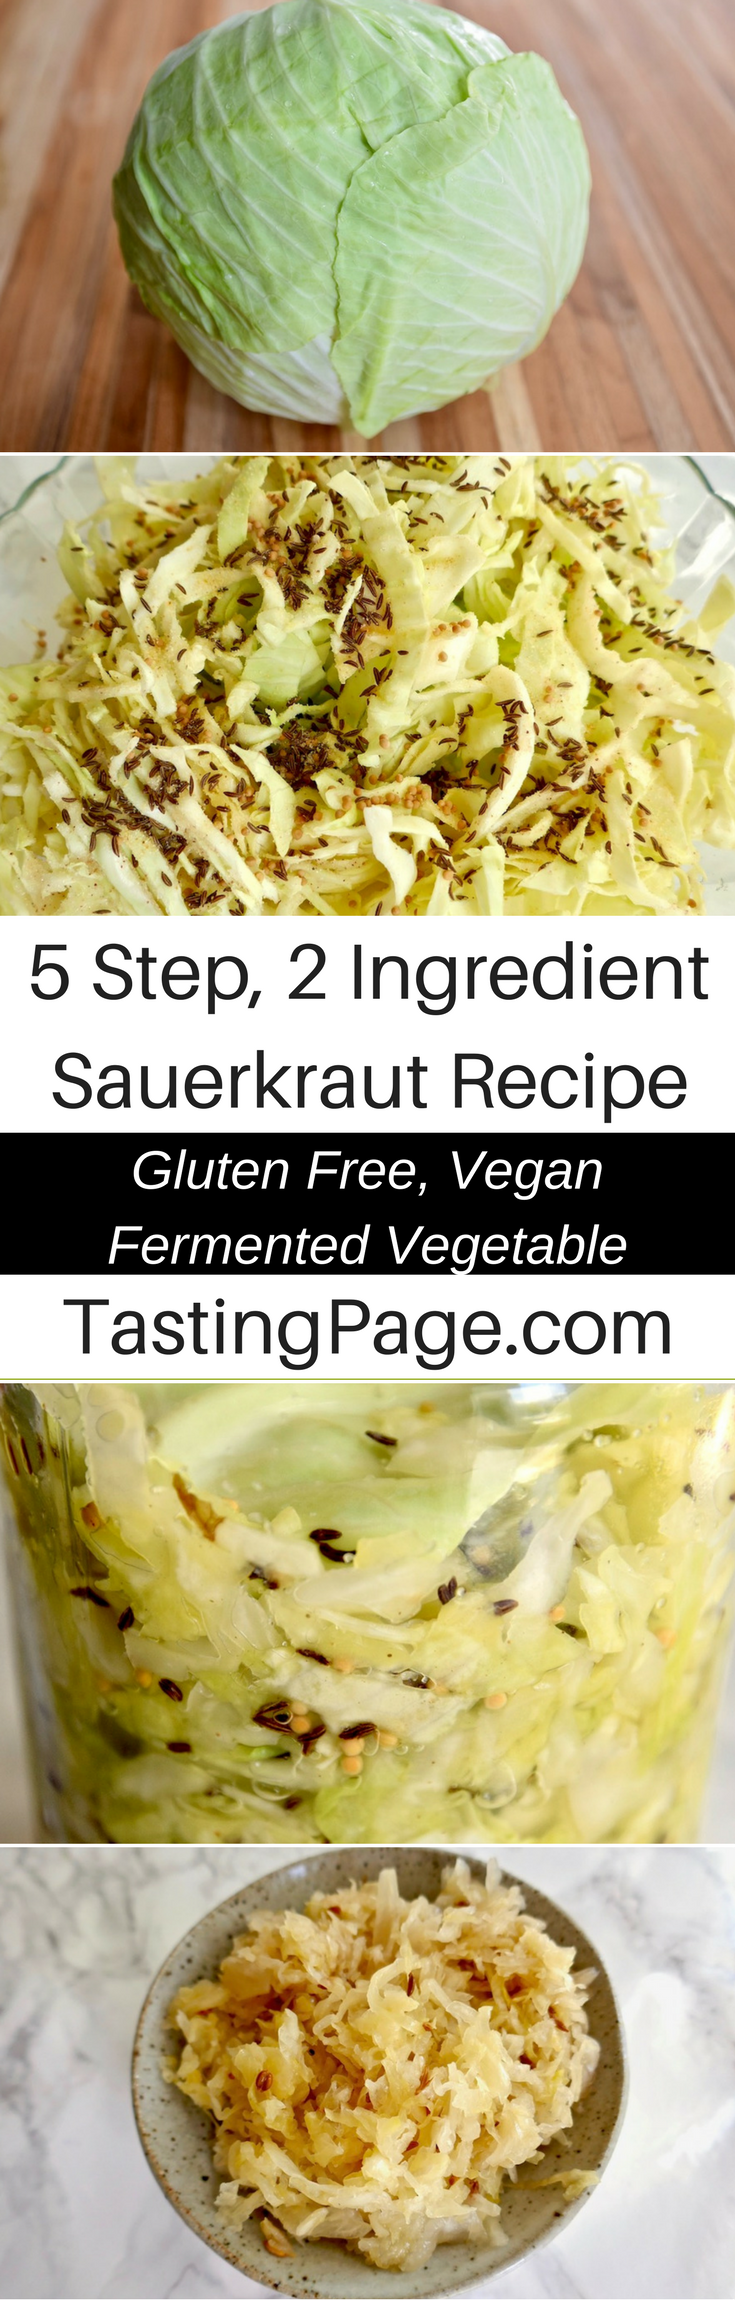 5 step 2 ingredient easy sauerkraut recipe - make your own fermented vegetables can be so easy, and it's so great for your health | TastingPage.com